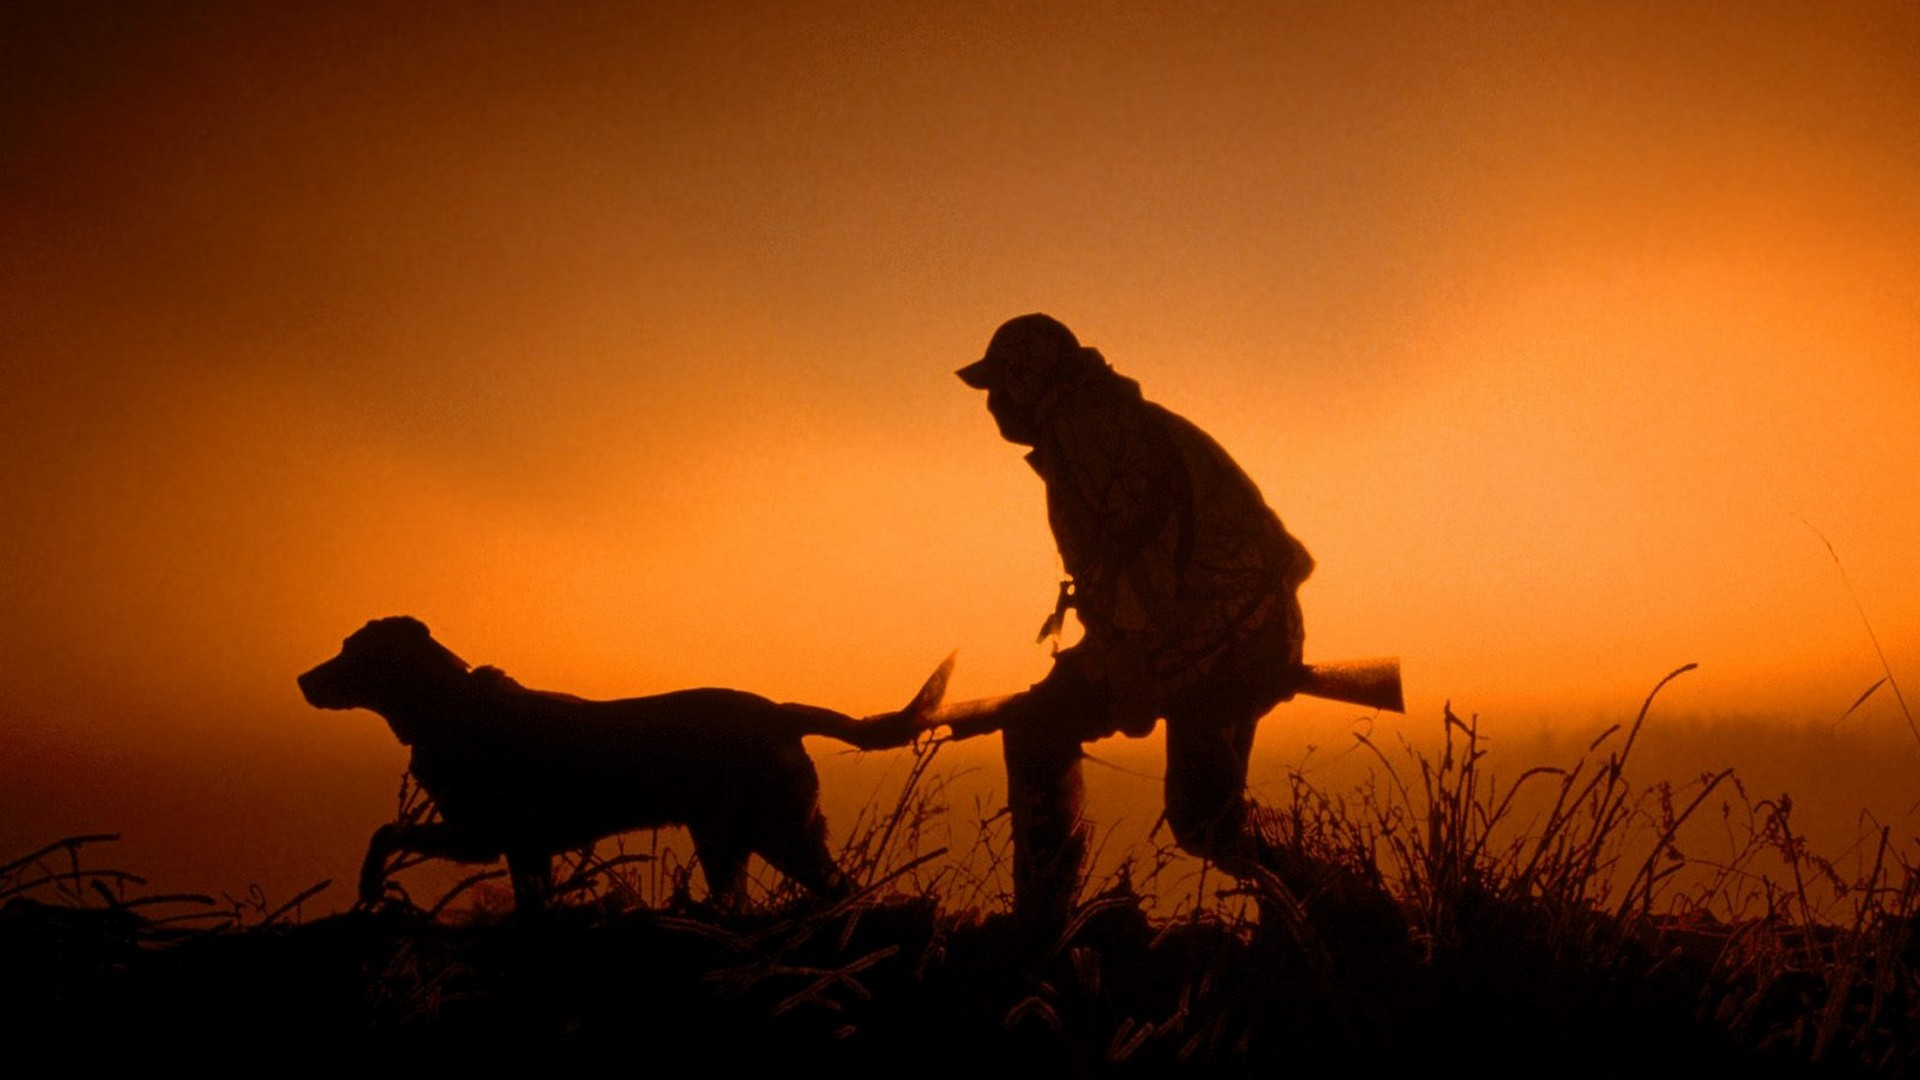 hunting-silhouette-wallpaper-1